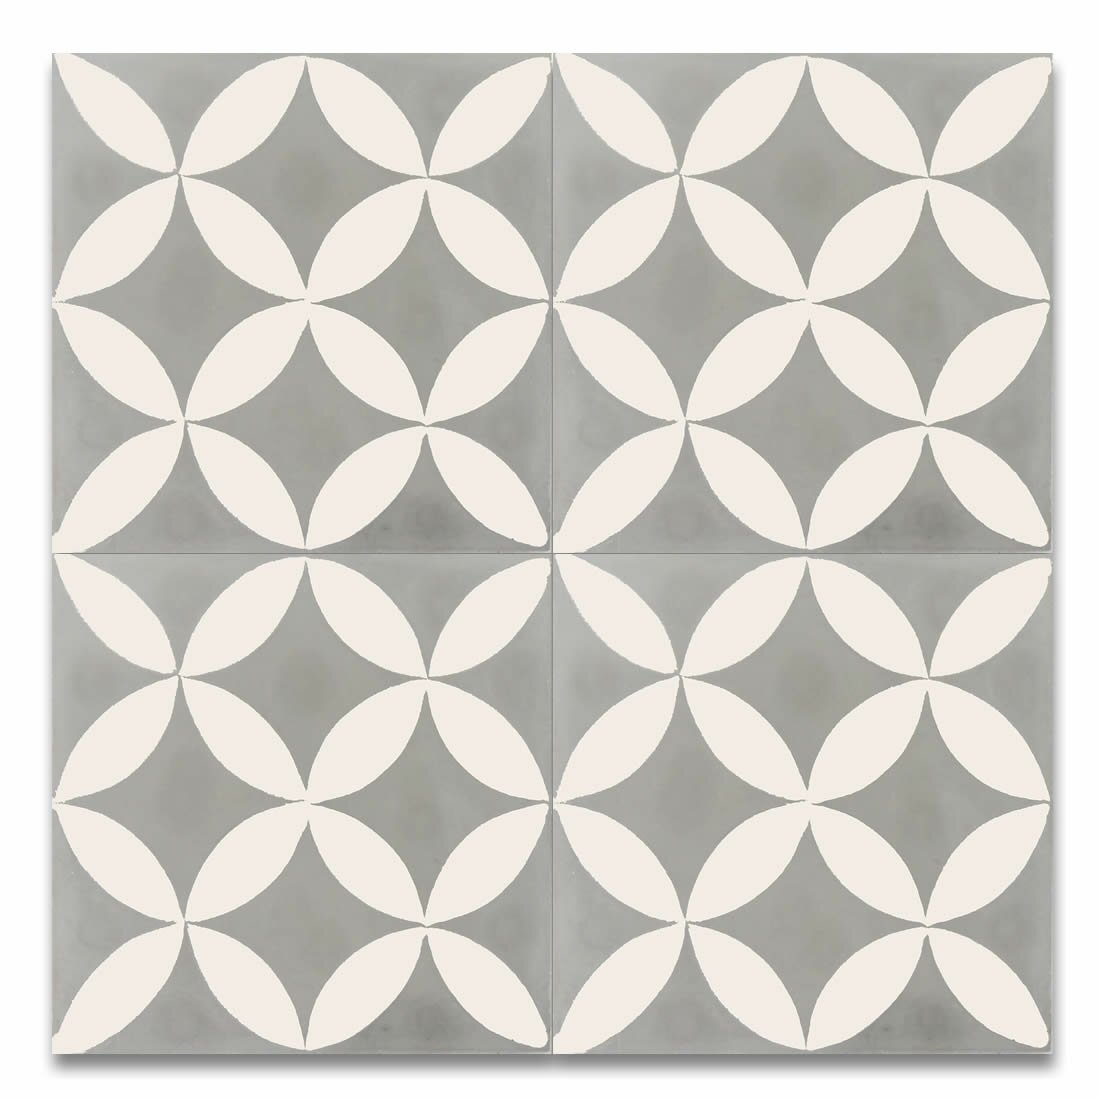 Moroccan mosaic tile house amlo 8 x 8 handmade cement for White cement tiles